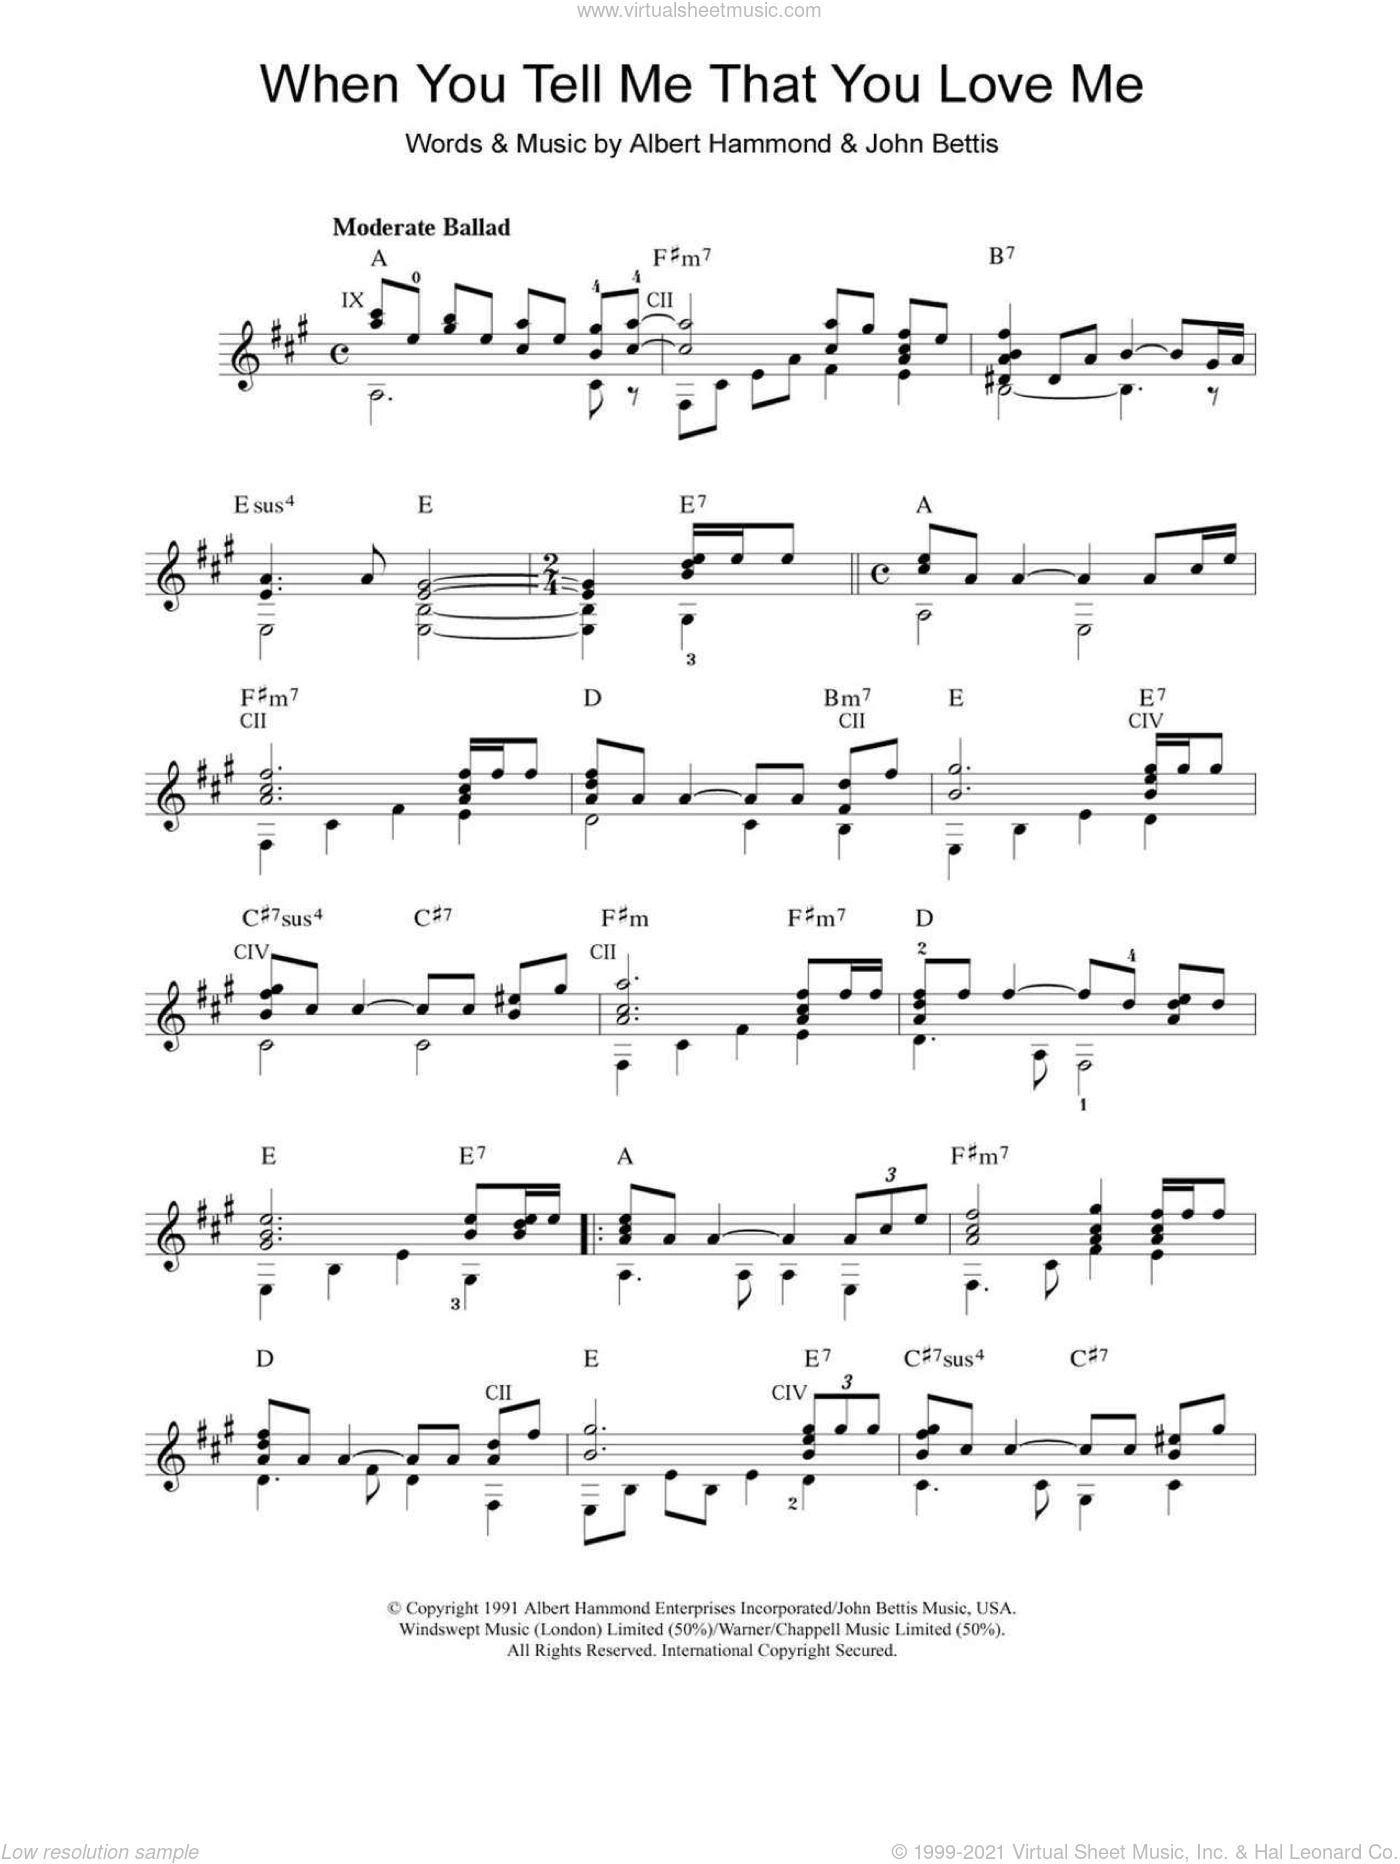 When You Tell Me That You Love Me sheet music for guitar solo (chords) by John Bettis, Diana Ross and Albert Hammond. Score Image Preview.